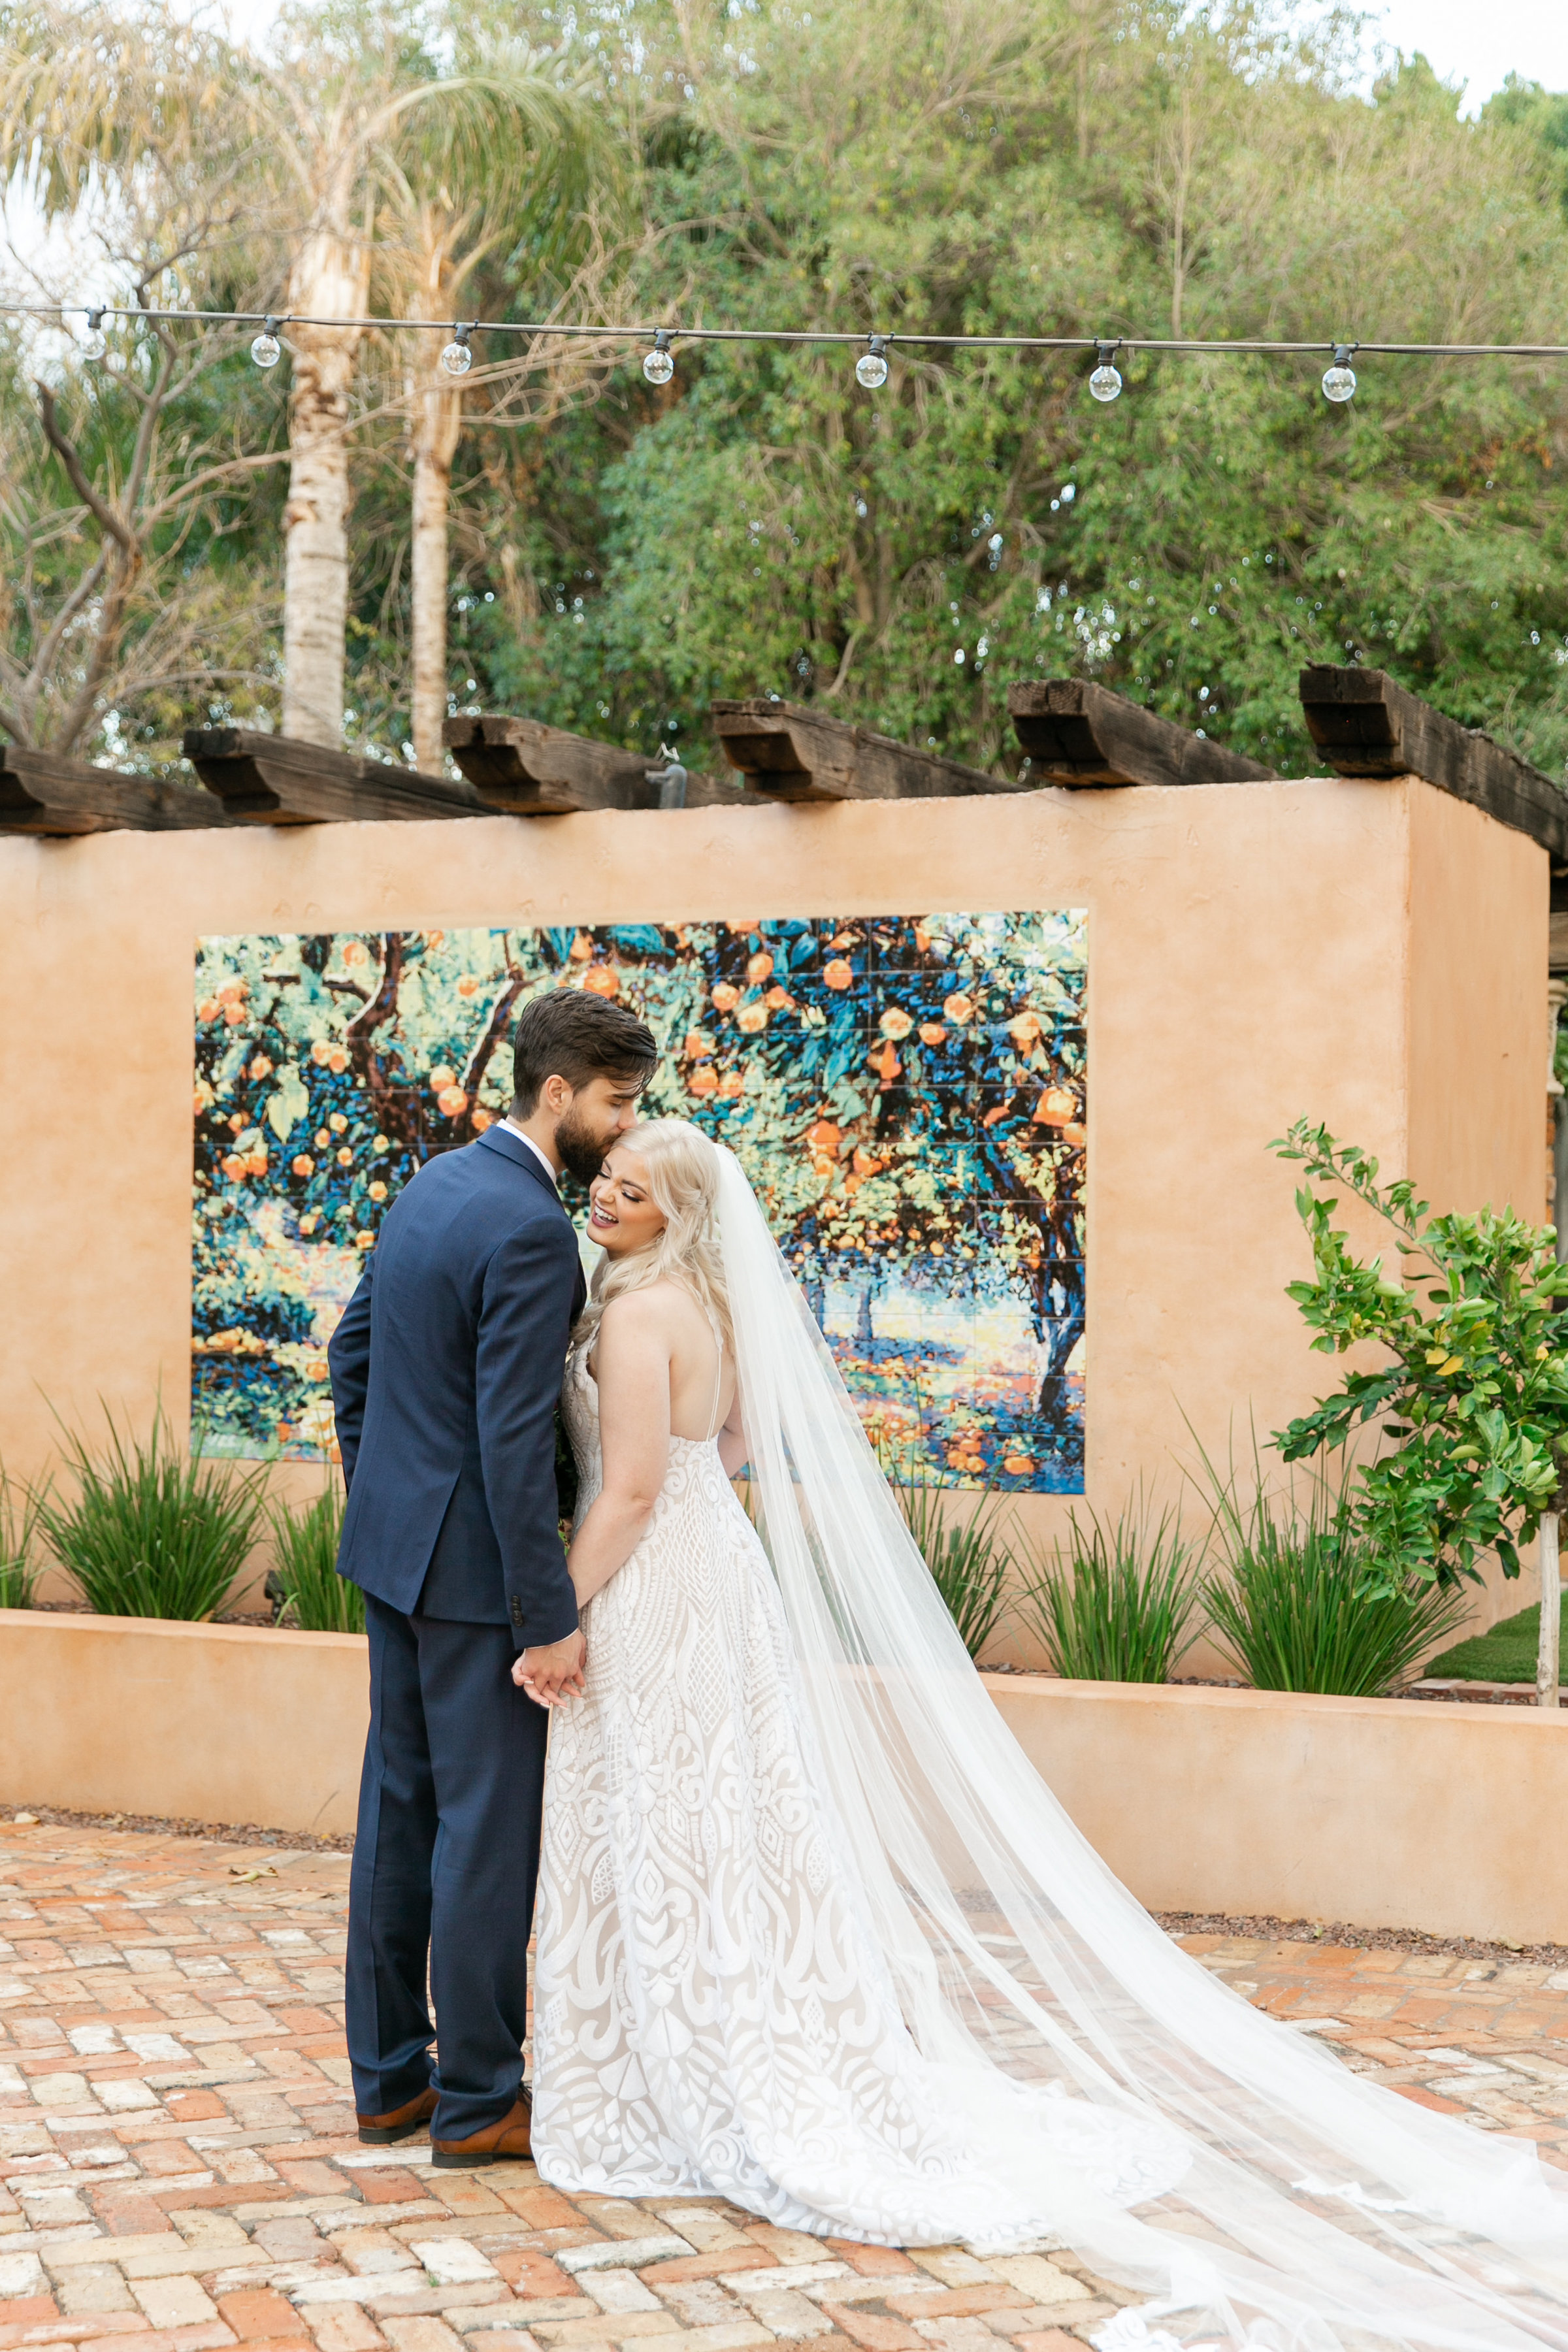 Karlie Colleen Photography - The Royal Palms Wedding - Some Like It Classic - Alex & Sam-530